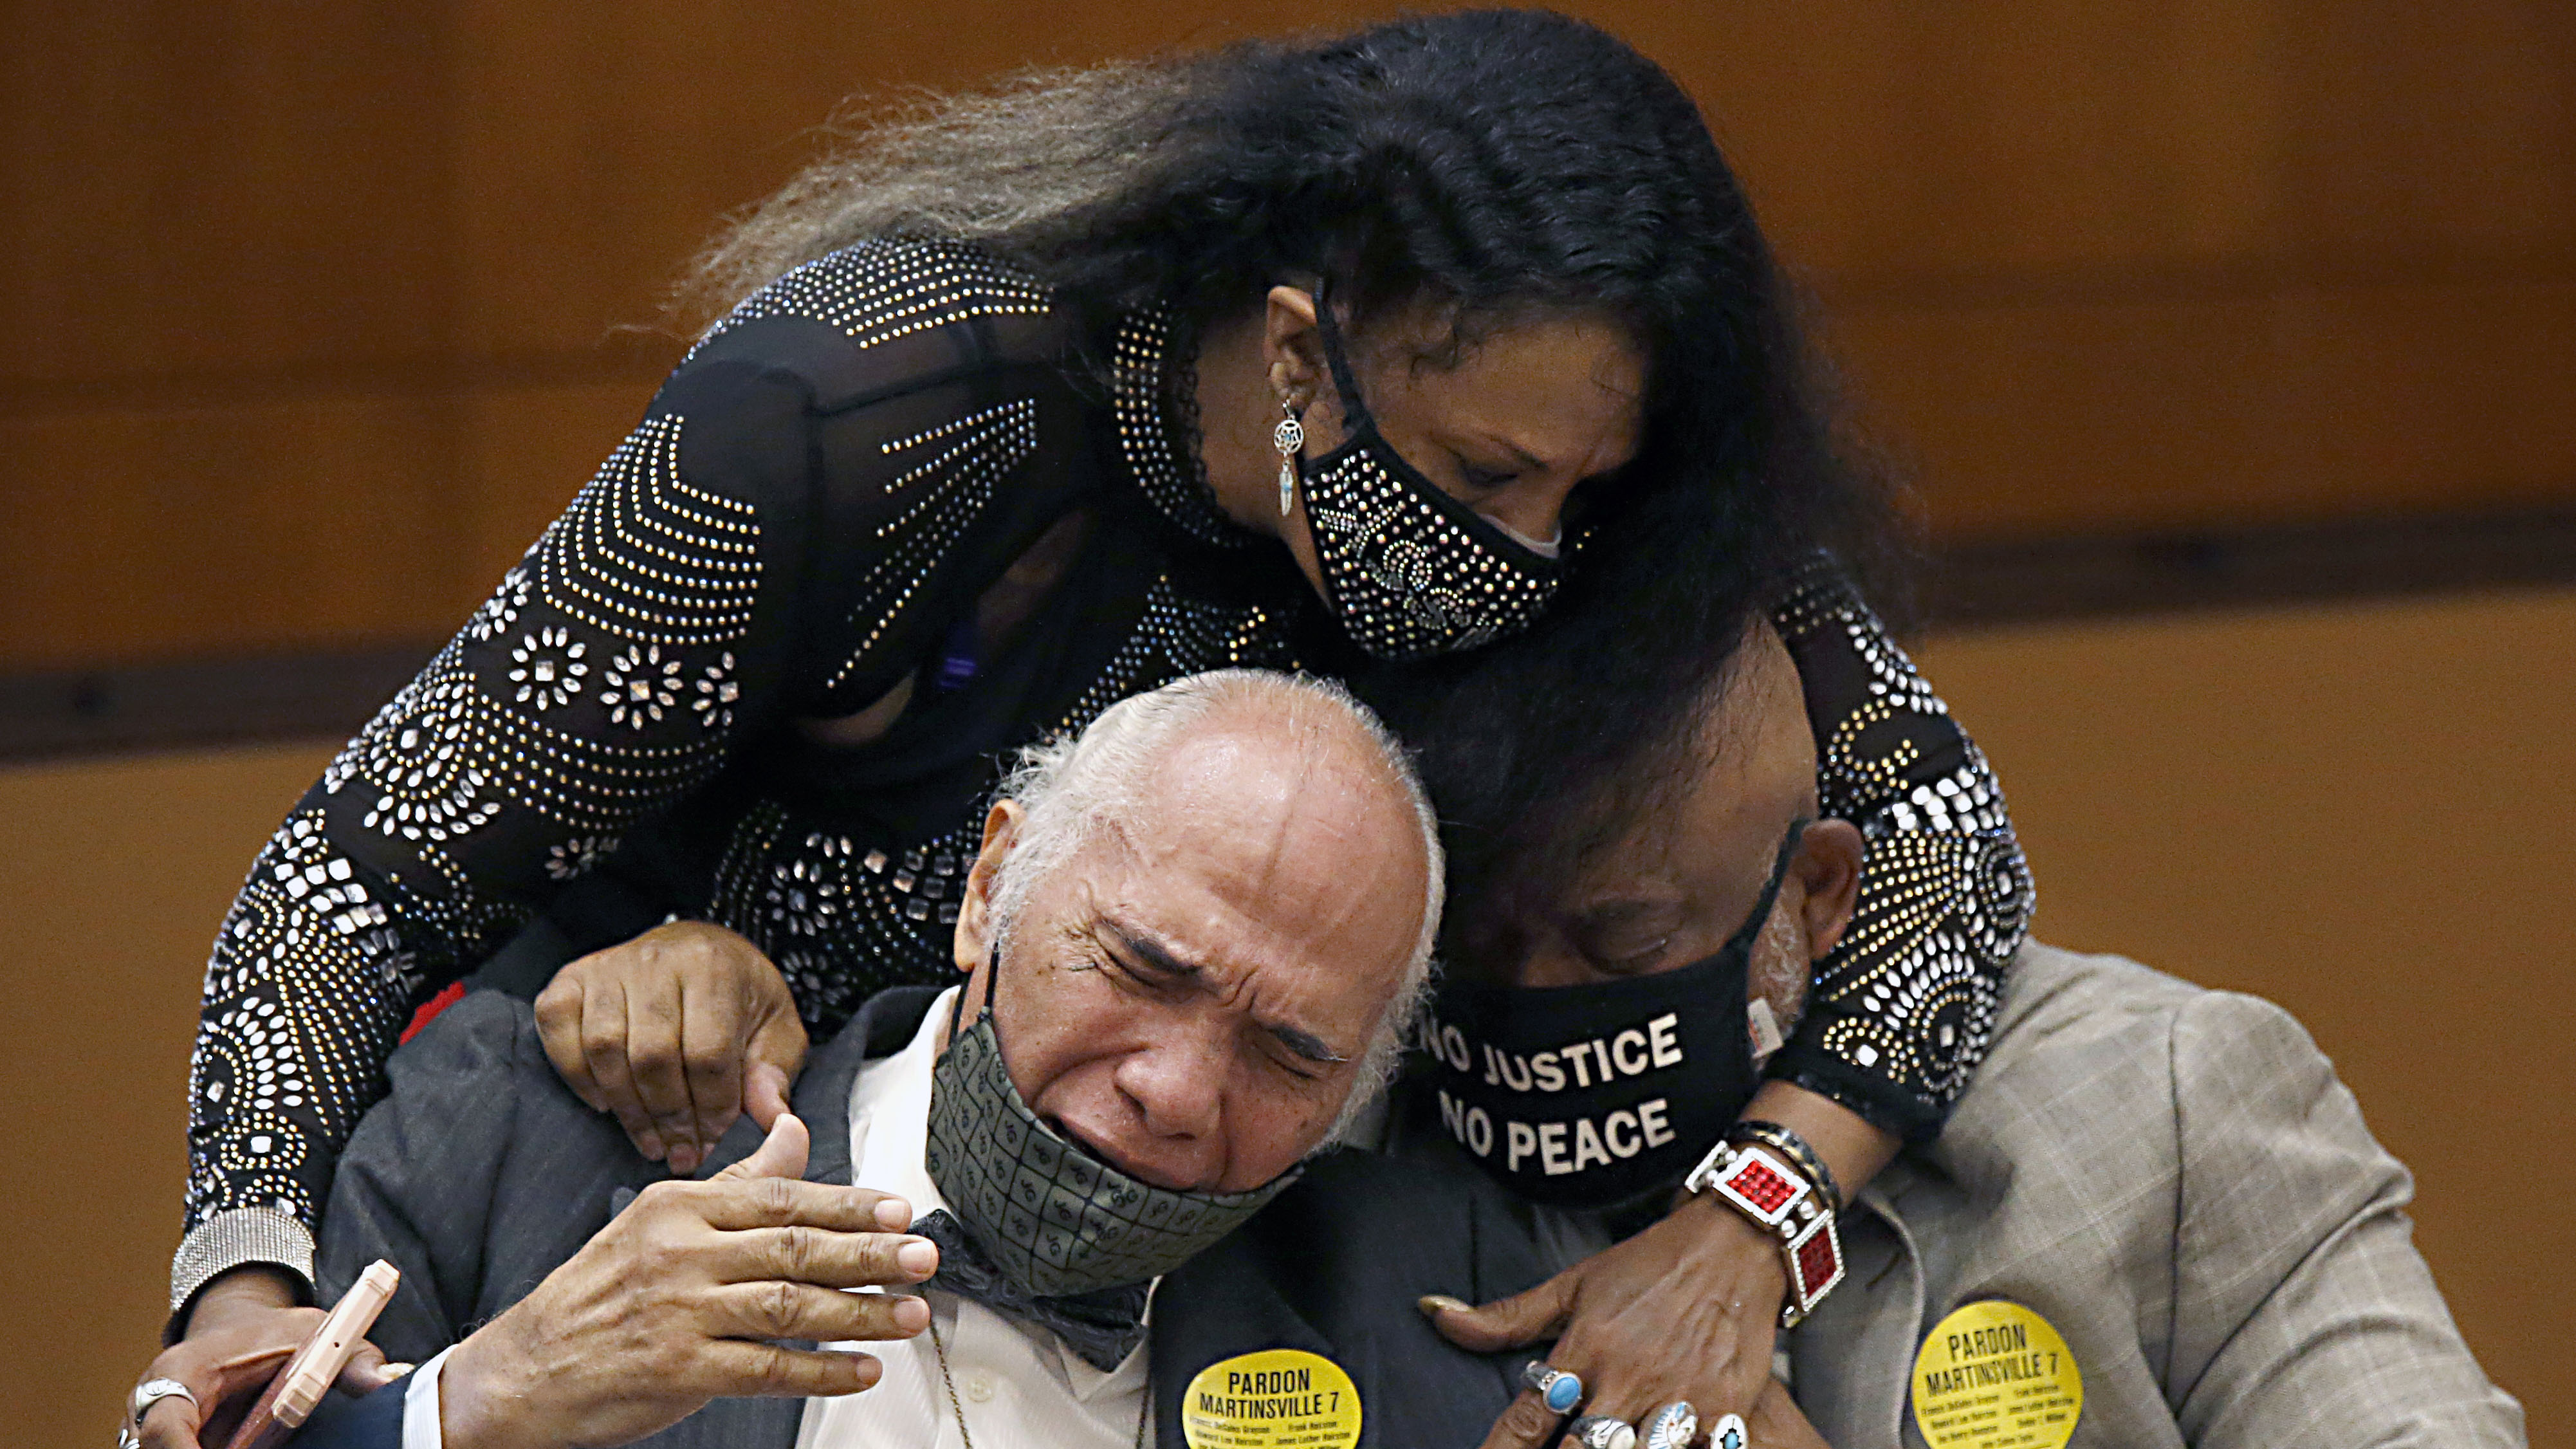 Rose Grayson, niece of Francis DeSales Grayson, top, comforts James Grayson, son of Francis DeSales Grayson, left, and Rudy MCollum, great nephew of Francis DeSales Grayson, one of the Martinsville Seven after posthumous pardons issued.